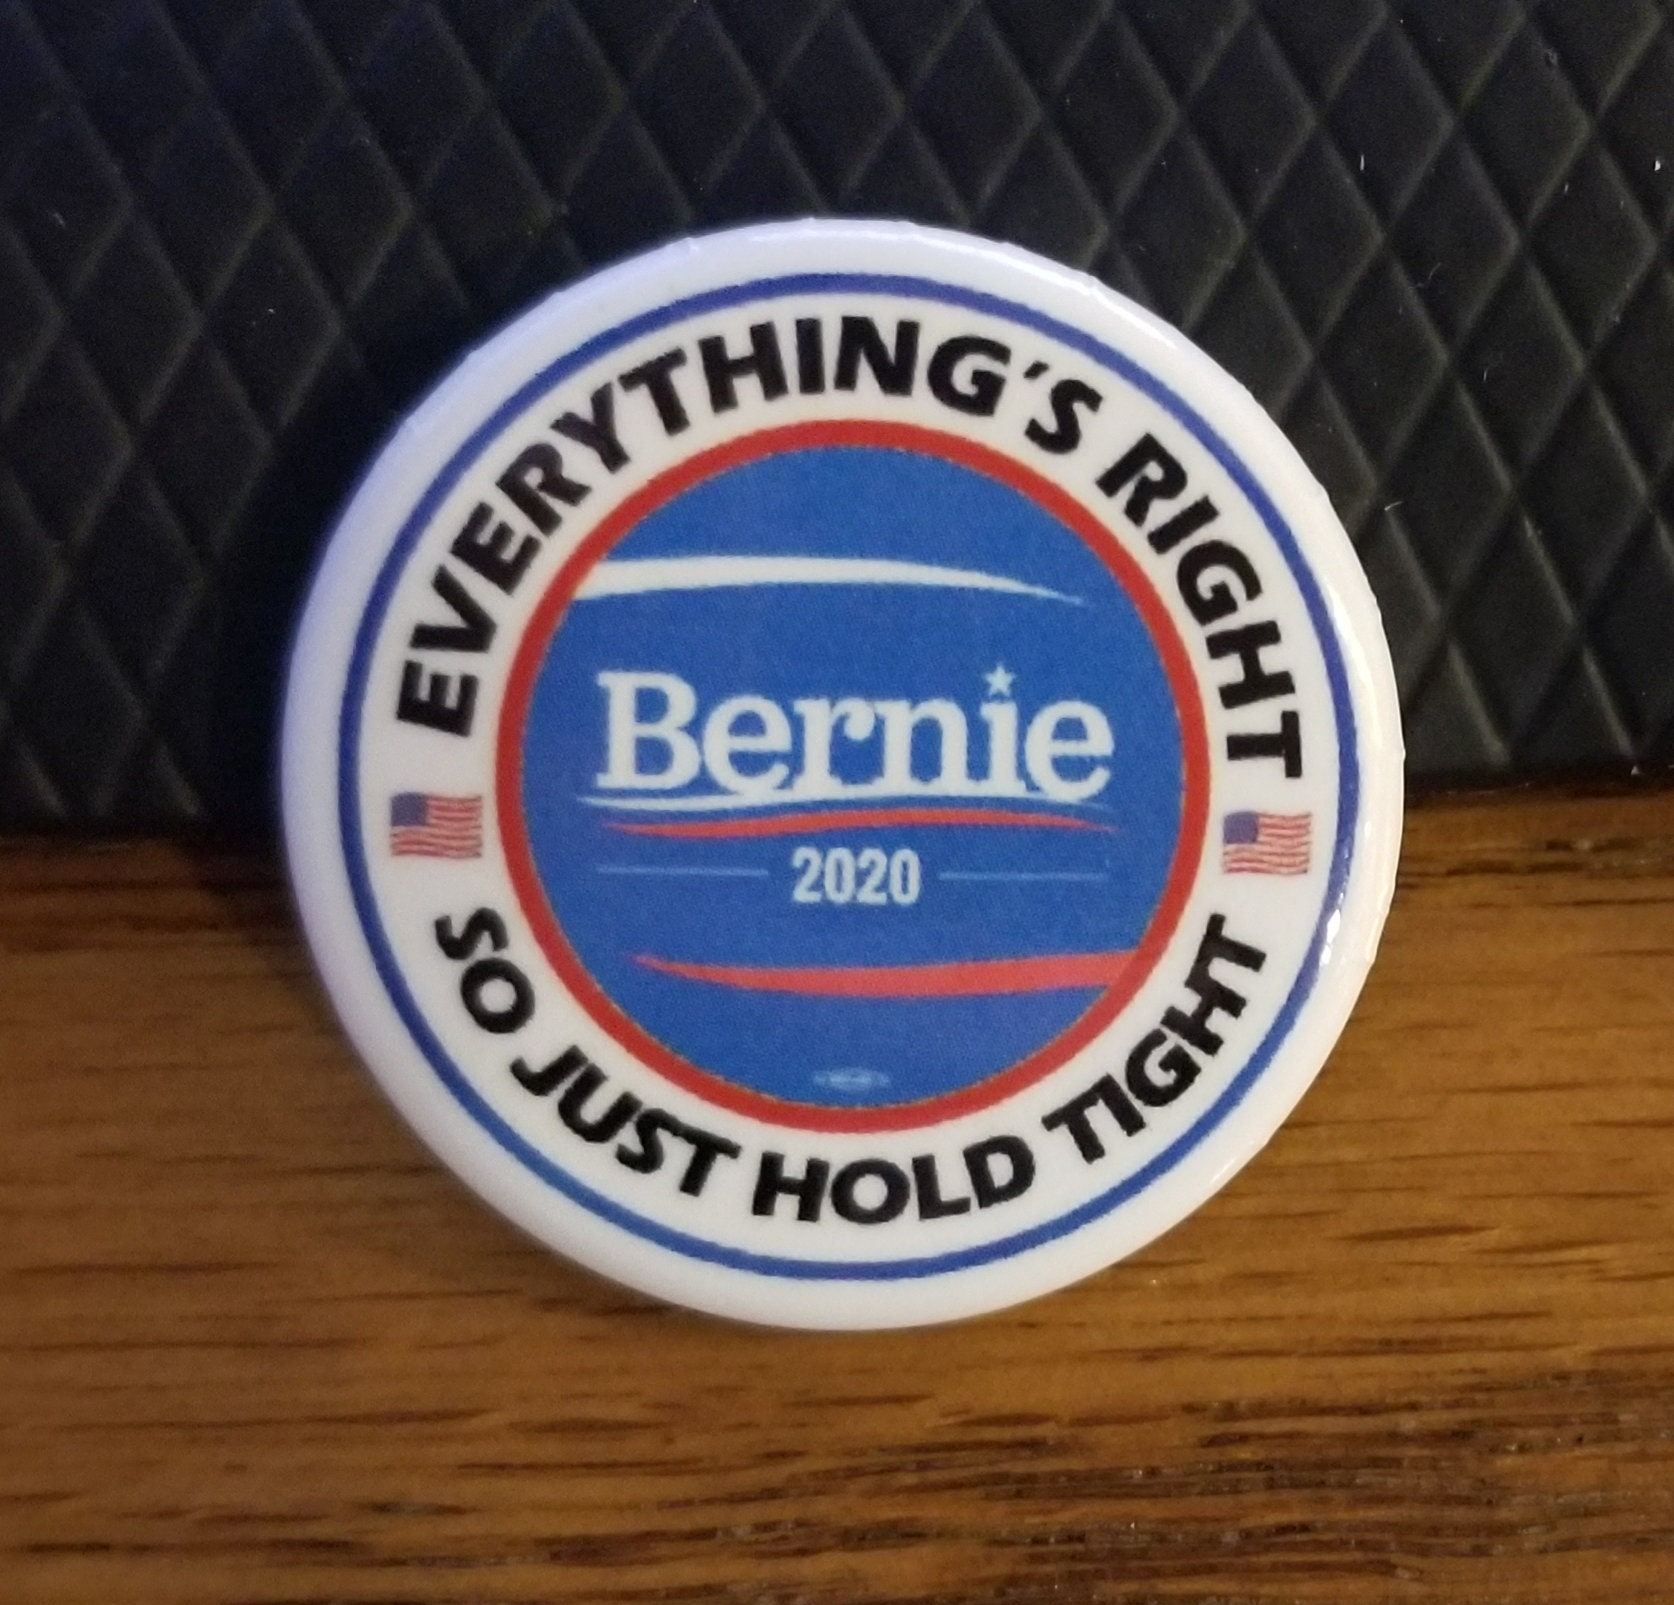 Phish Summer Tour 2020.Sold In Groups Of 5 Bernie Sanders 2020 Button W